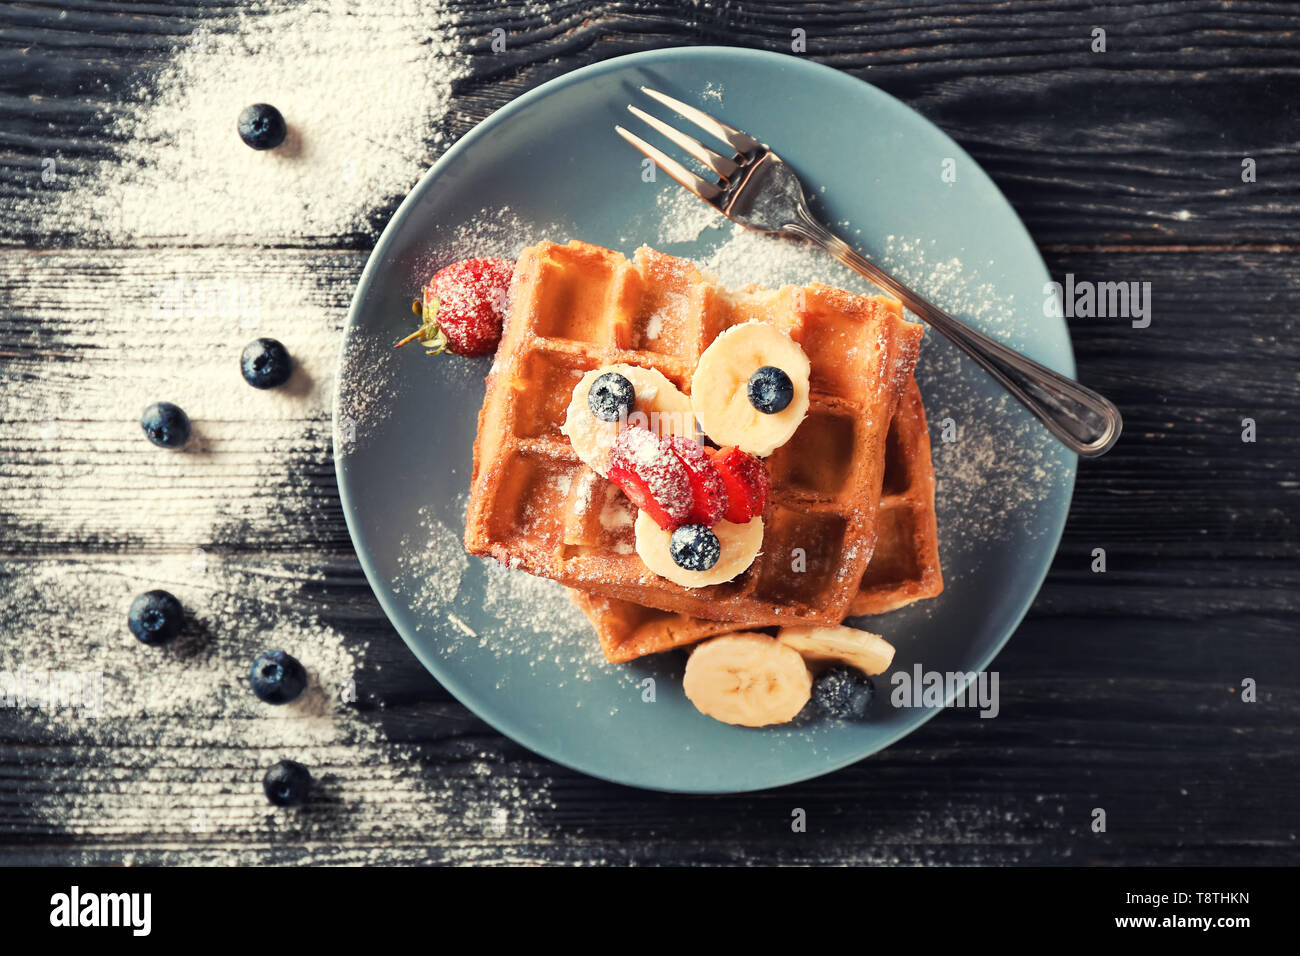 Plate with delicious waffles and berries on wooden table - Stock Image